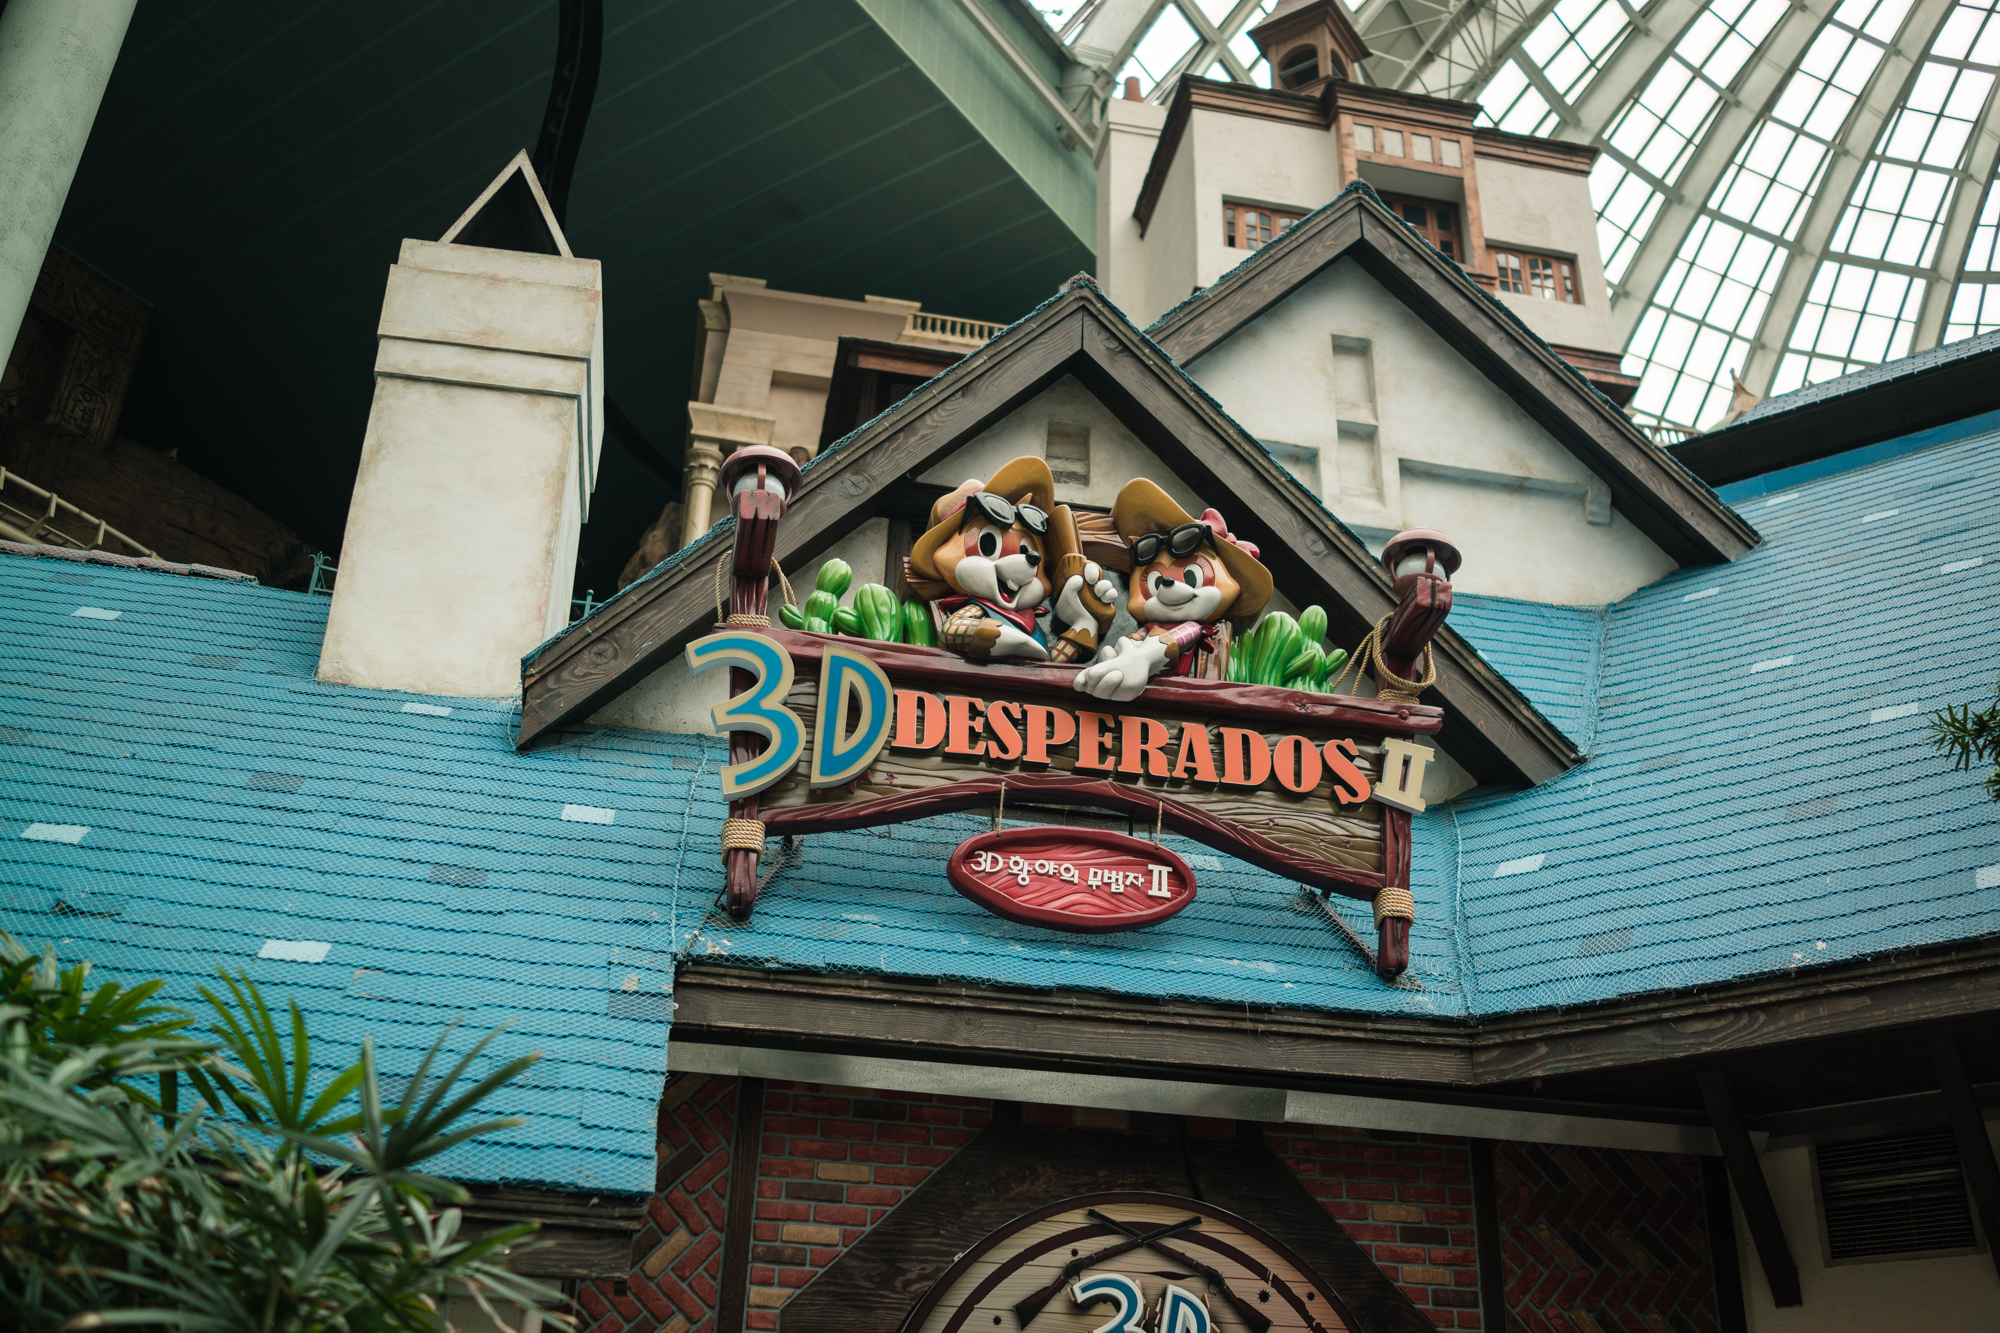 Lotte World's 3D Desperados II